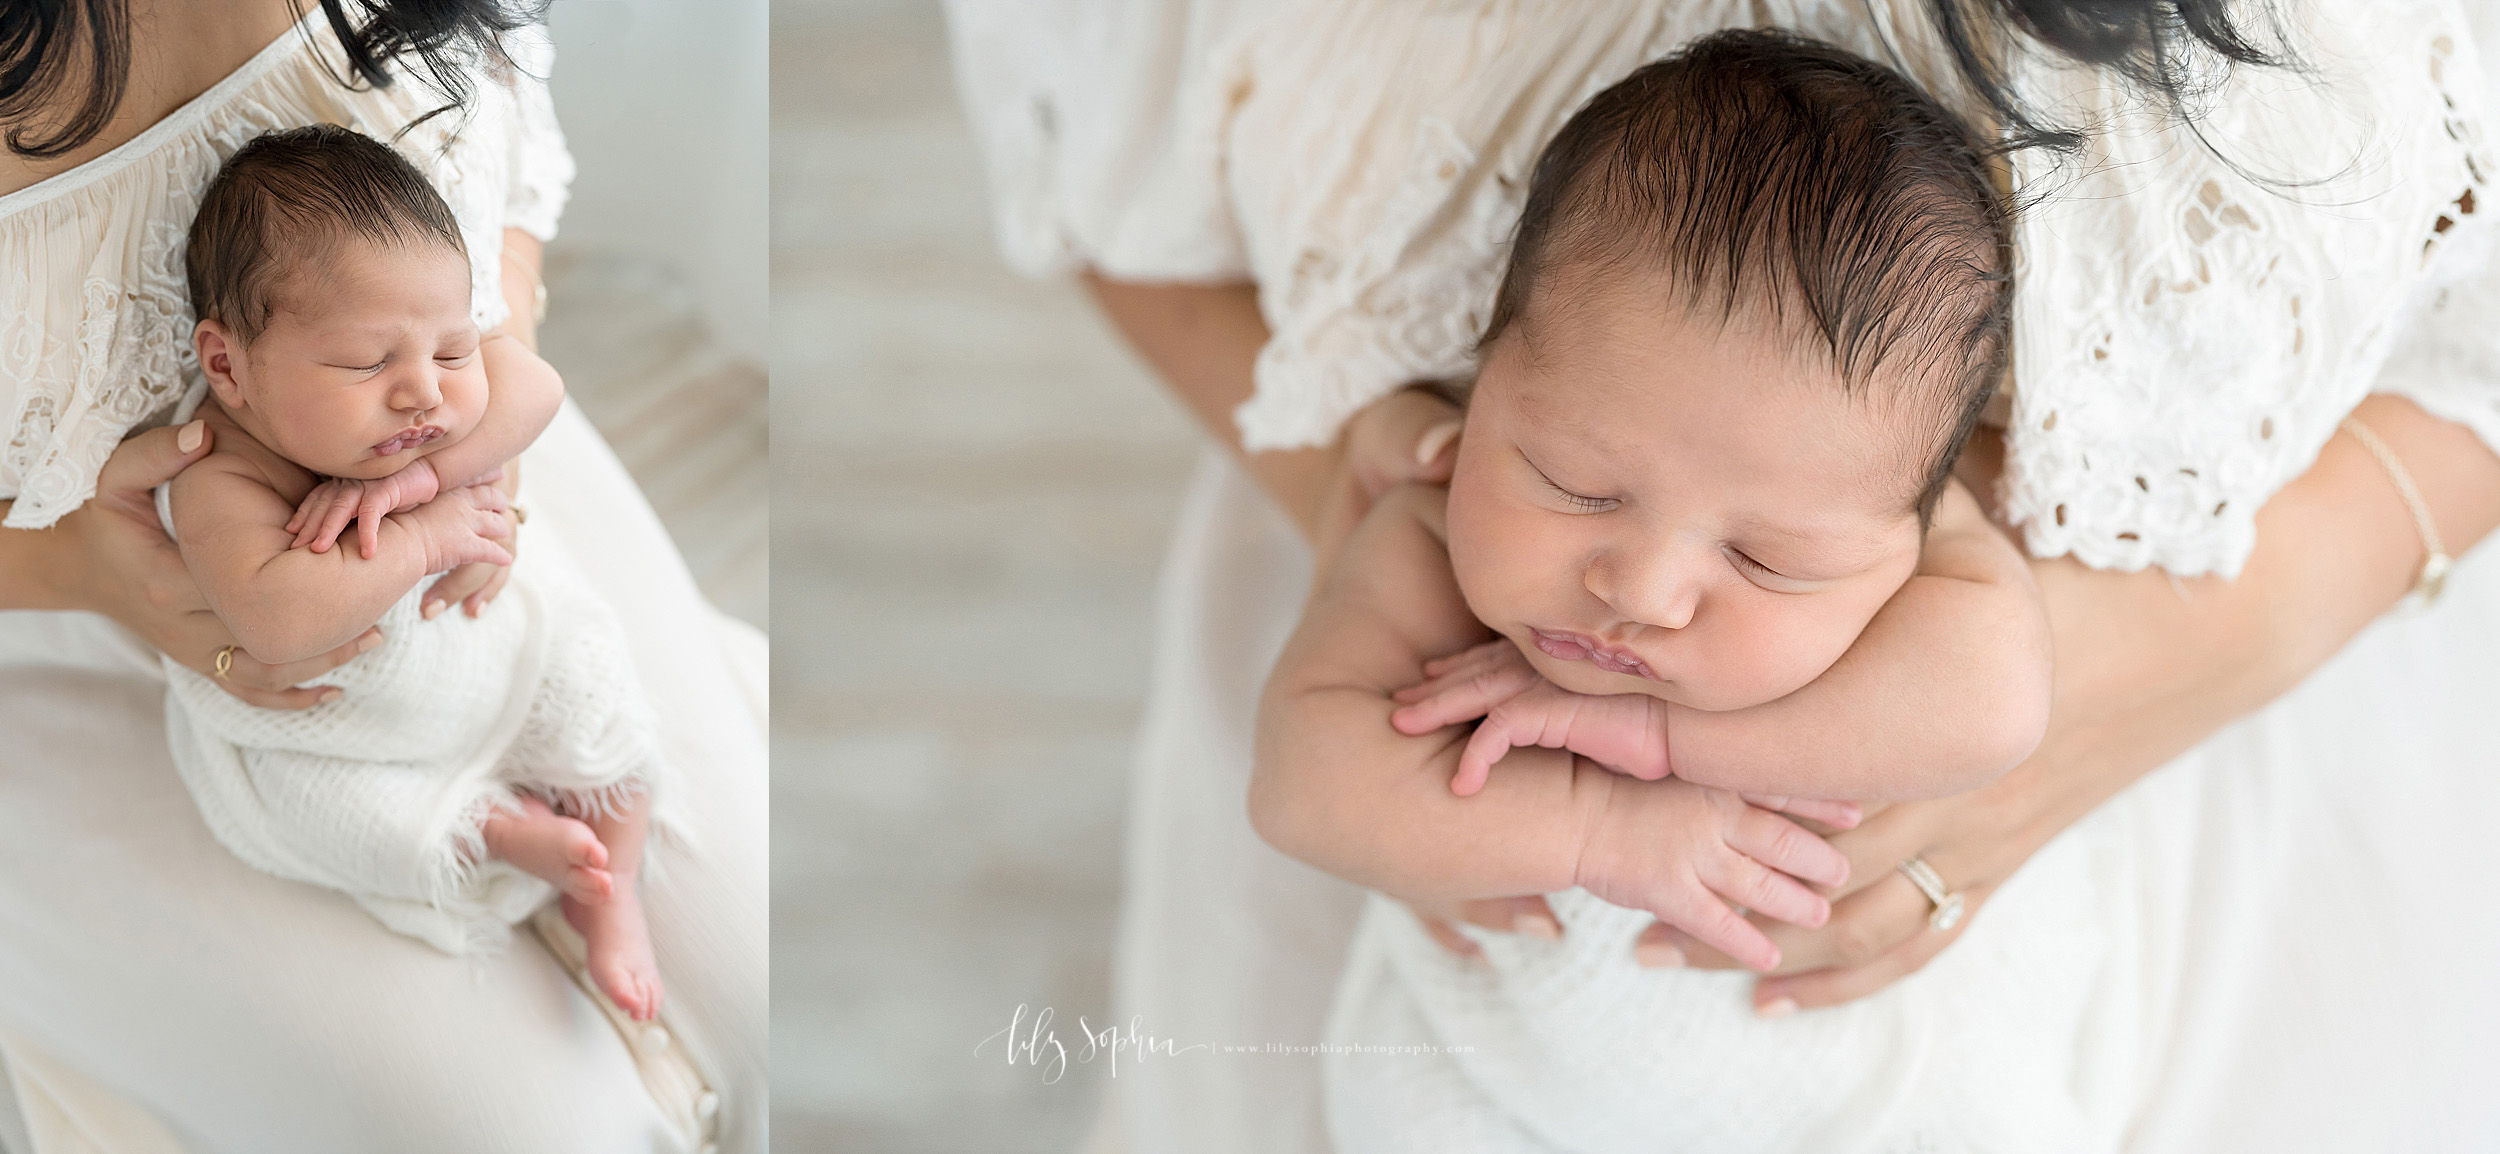 atlanta-brookhaven-decatur-sandy-springs-buckhead-virginia-highlands-west-end-decatur-lily-sophia-photography-new-family-newborn-baby-boy-studio-photos_1579.jpg